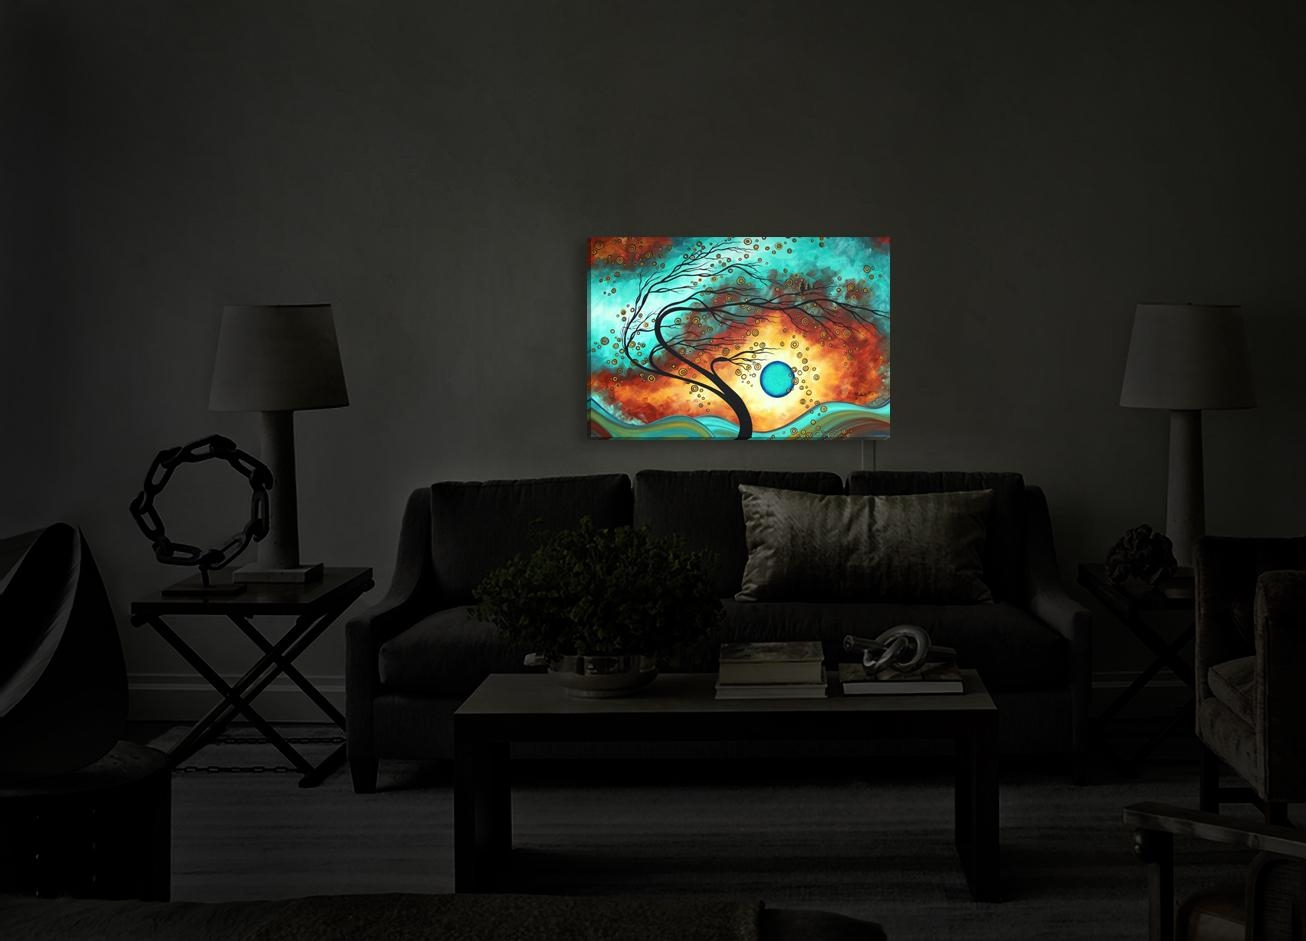 Wall Decor: Illuminated Wall Art Photo (Image 13 of 20)